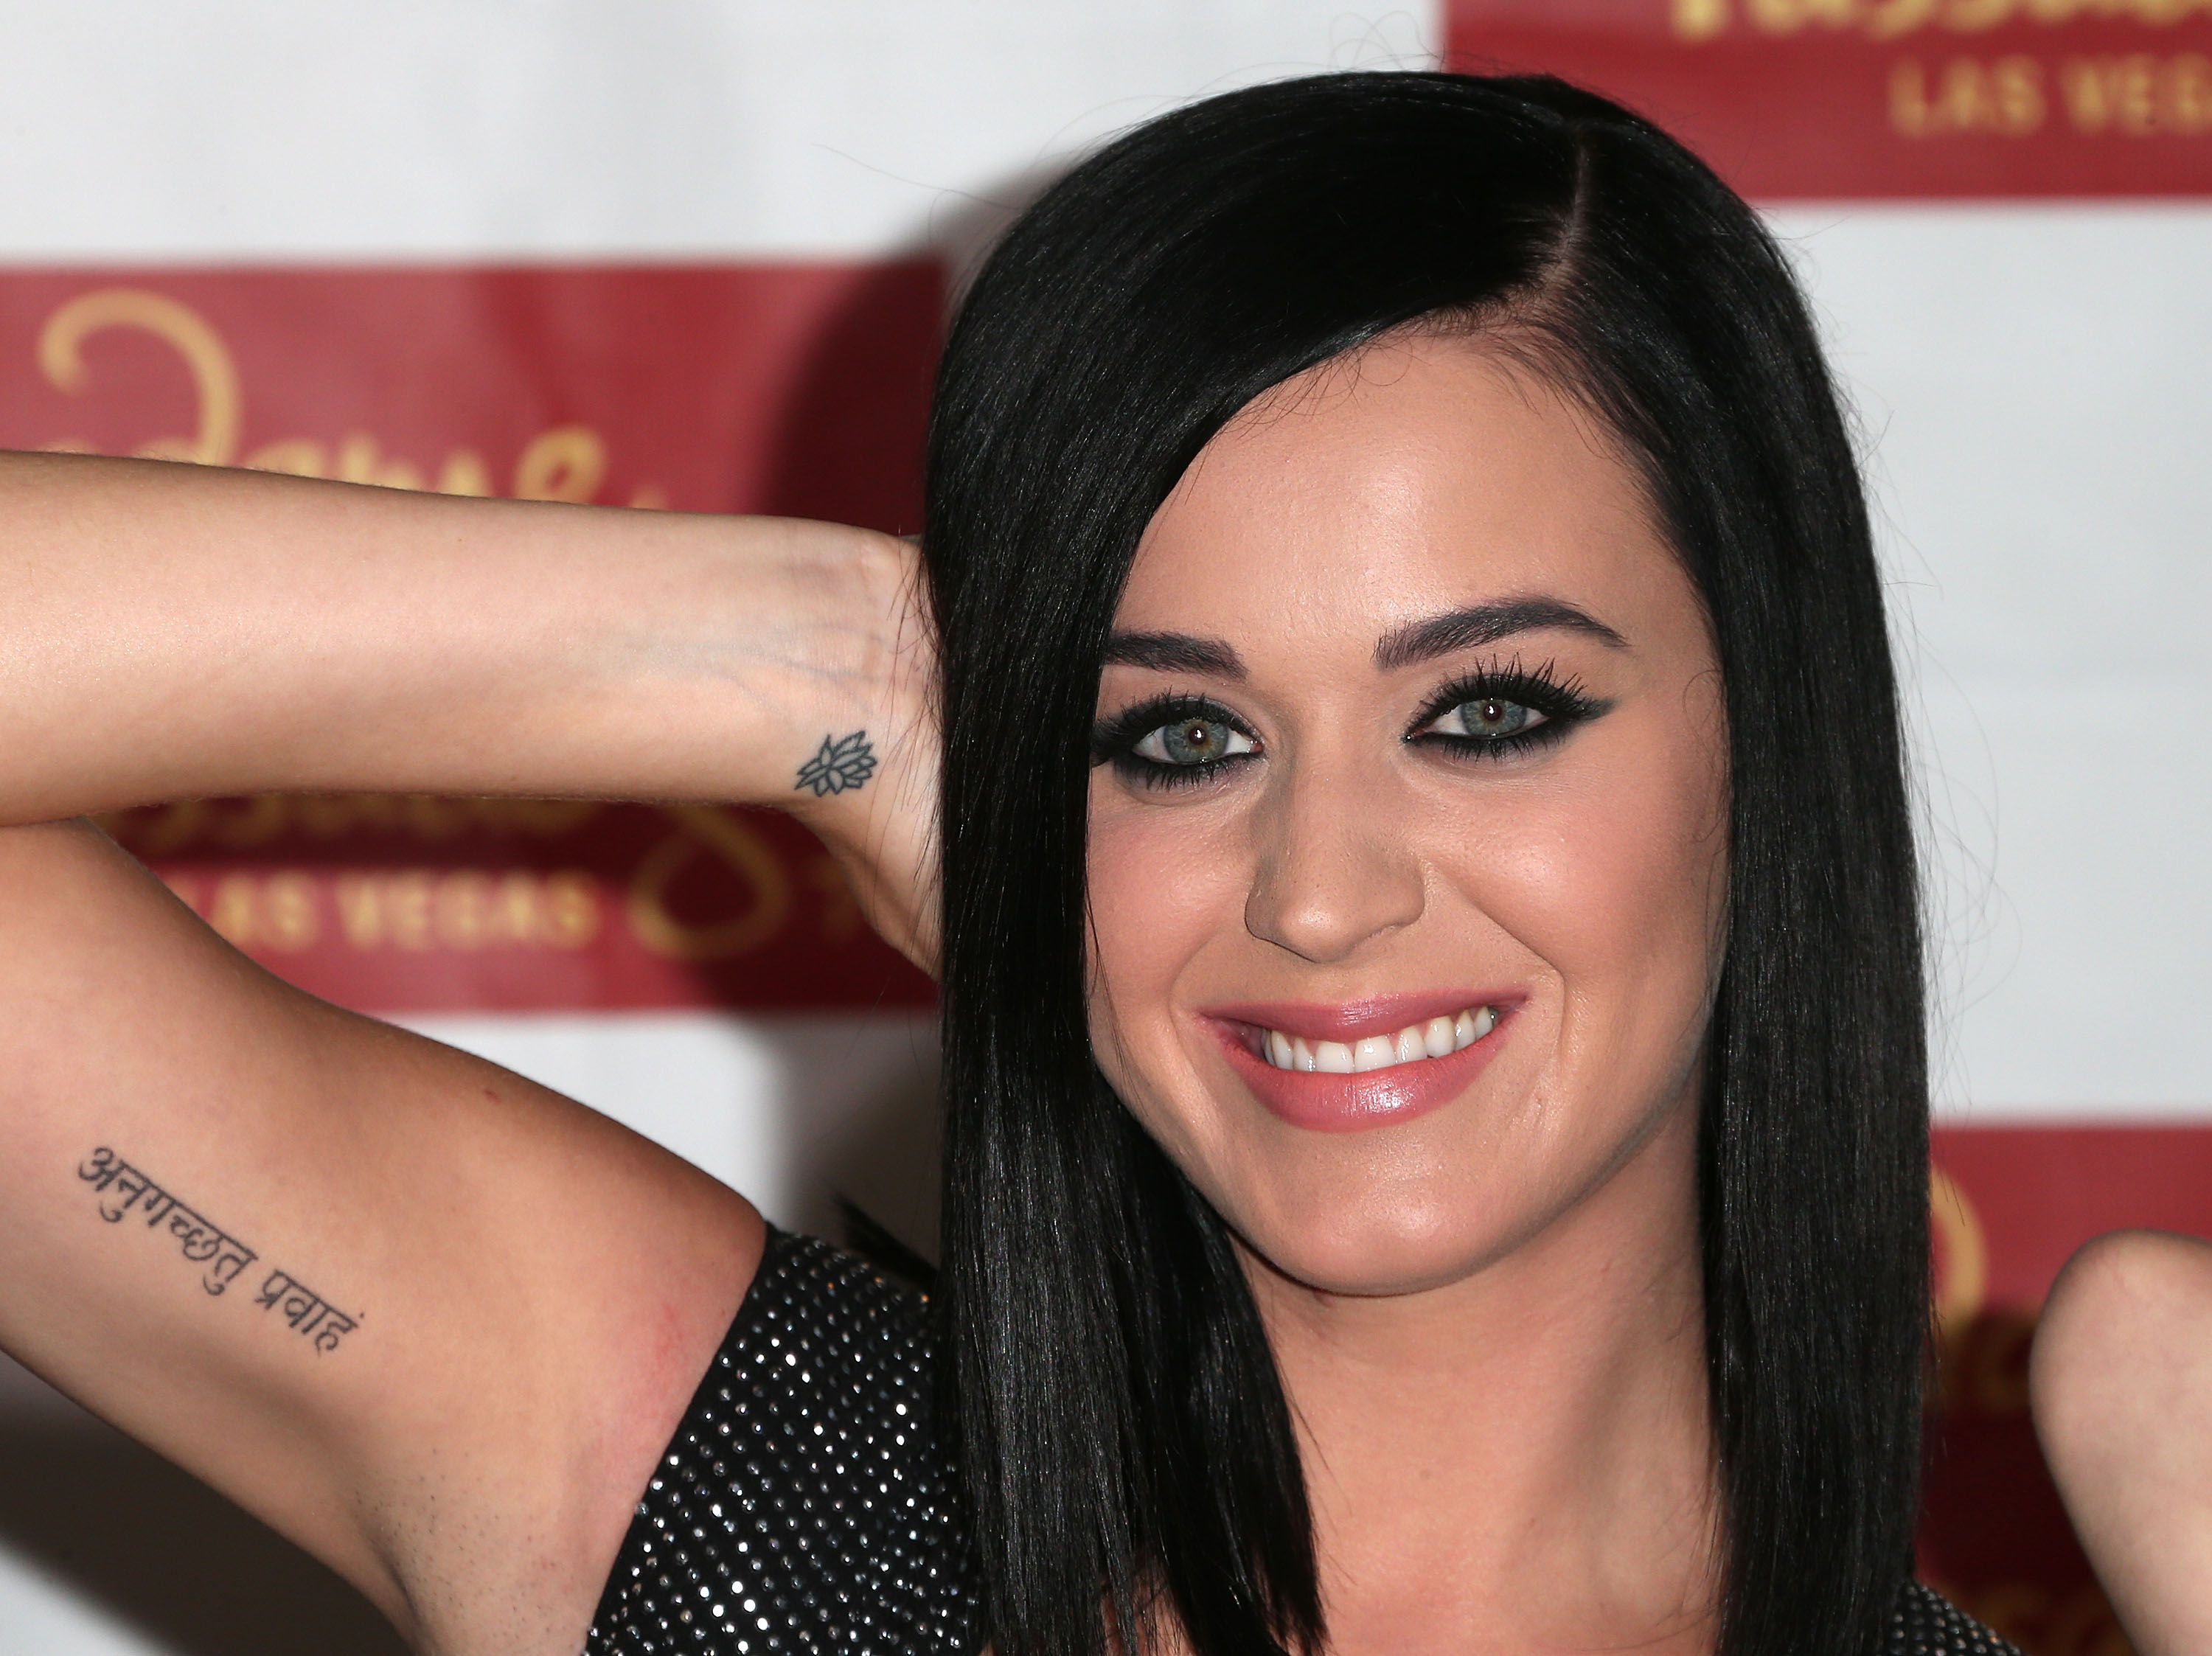 Katy Perry Unveils Her Wax Figure For Madame Tussauds' Las Vegas at Paramont Studios on January 26, 2013 in Hollywood, California. | Source: Getty Images